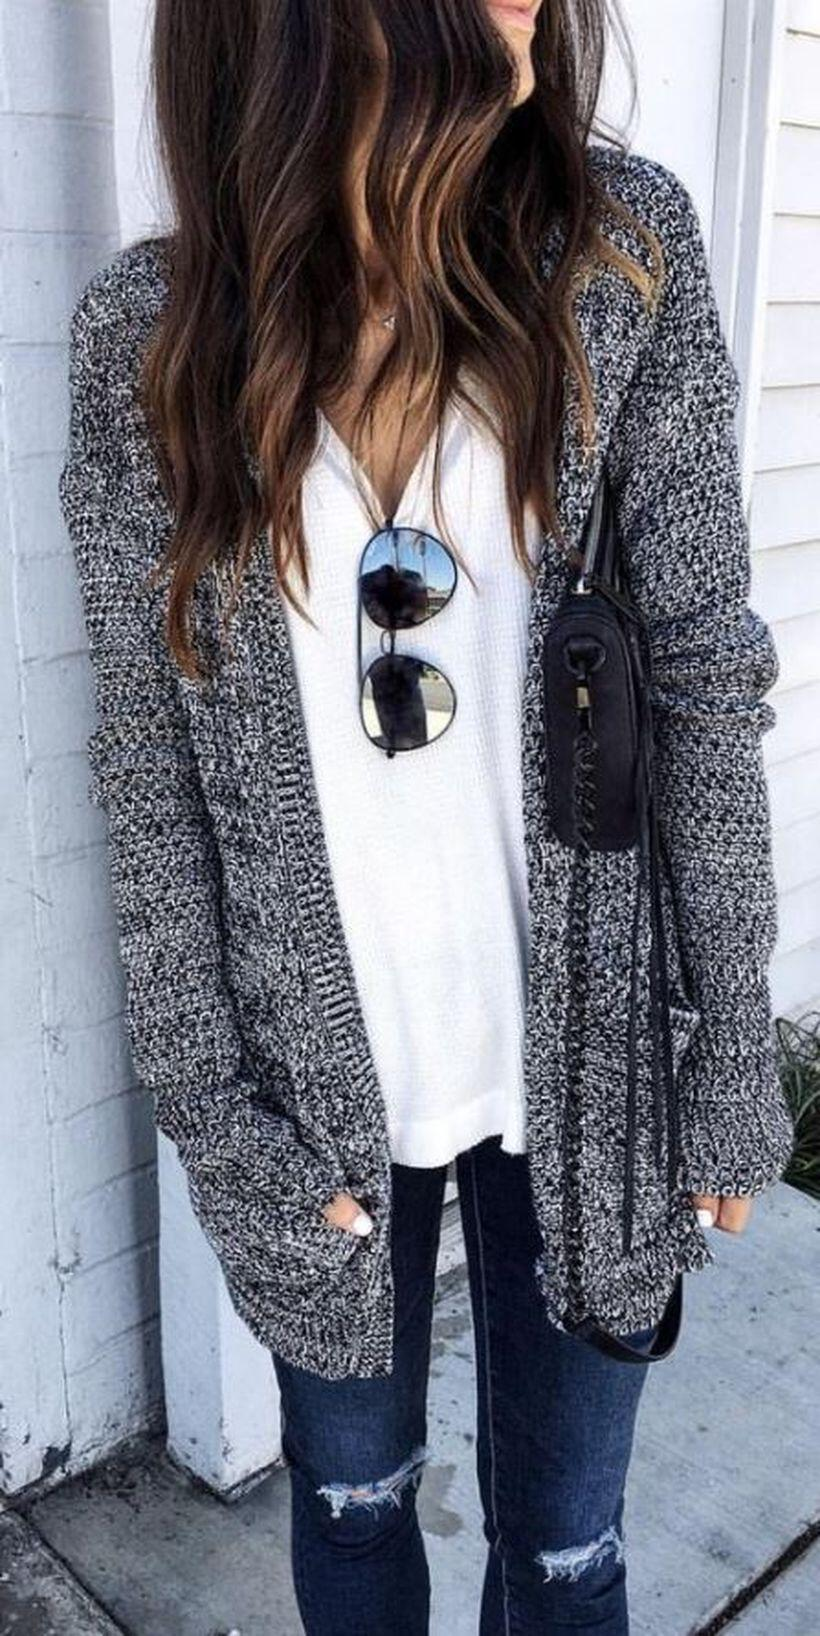 casual fall outfits 5 best outfits 6 - 14 casual fall outfits that you can wear all day